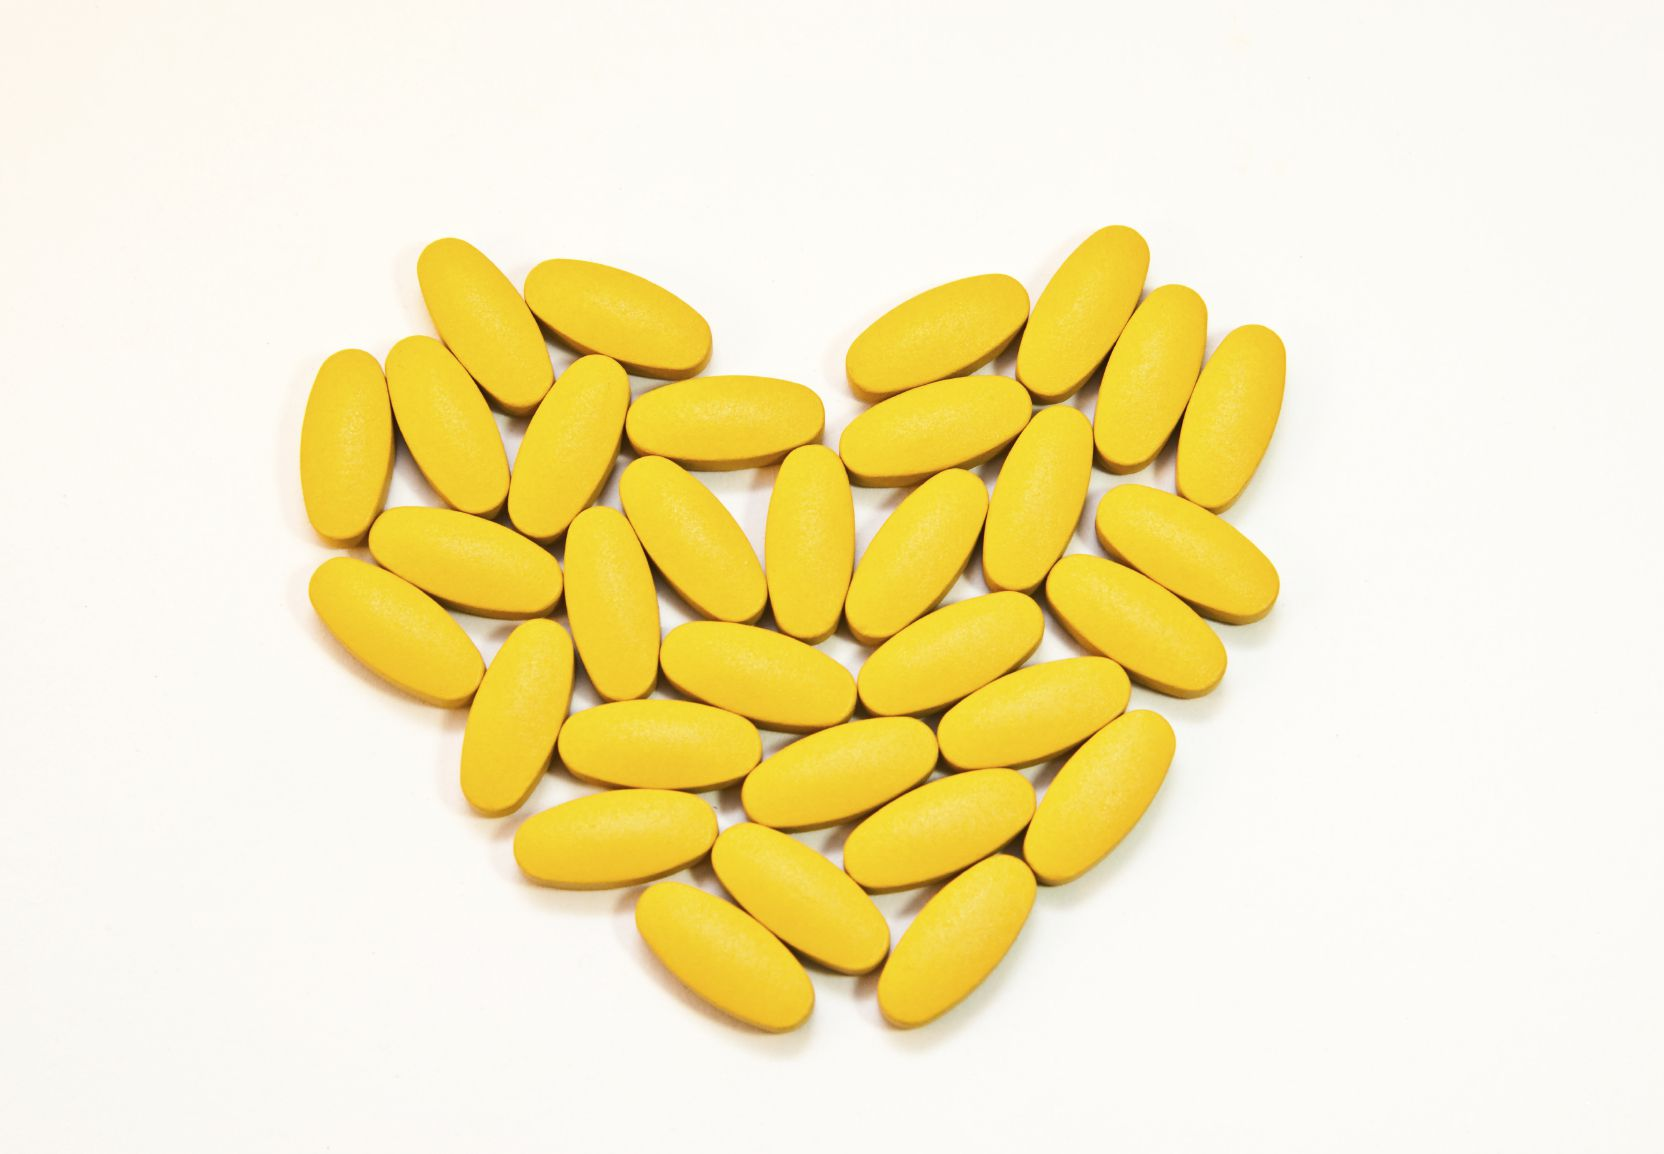 Can Phytosterol Supplements Lower Your Cholesterol